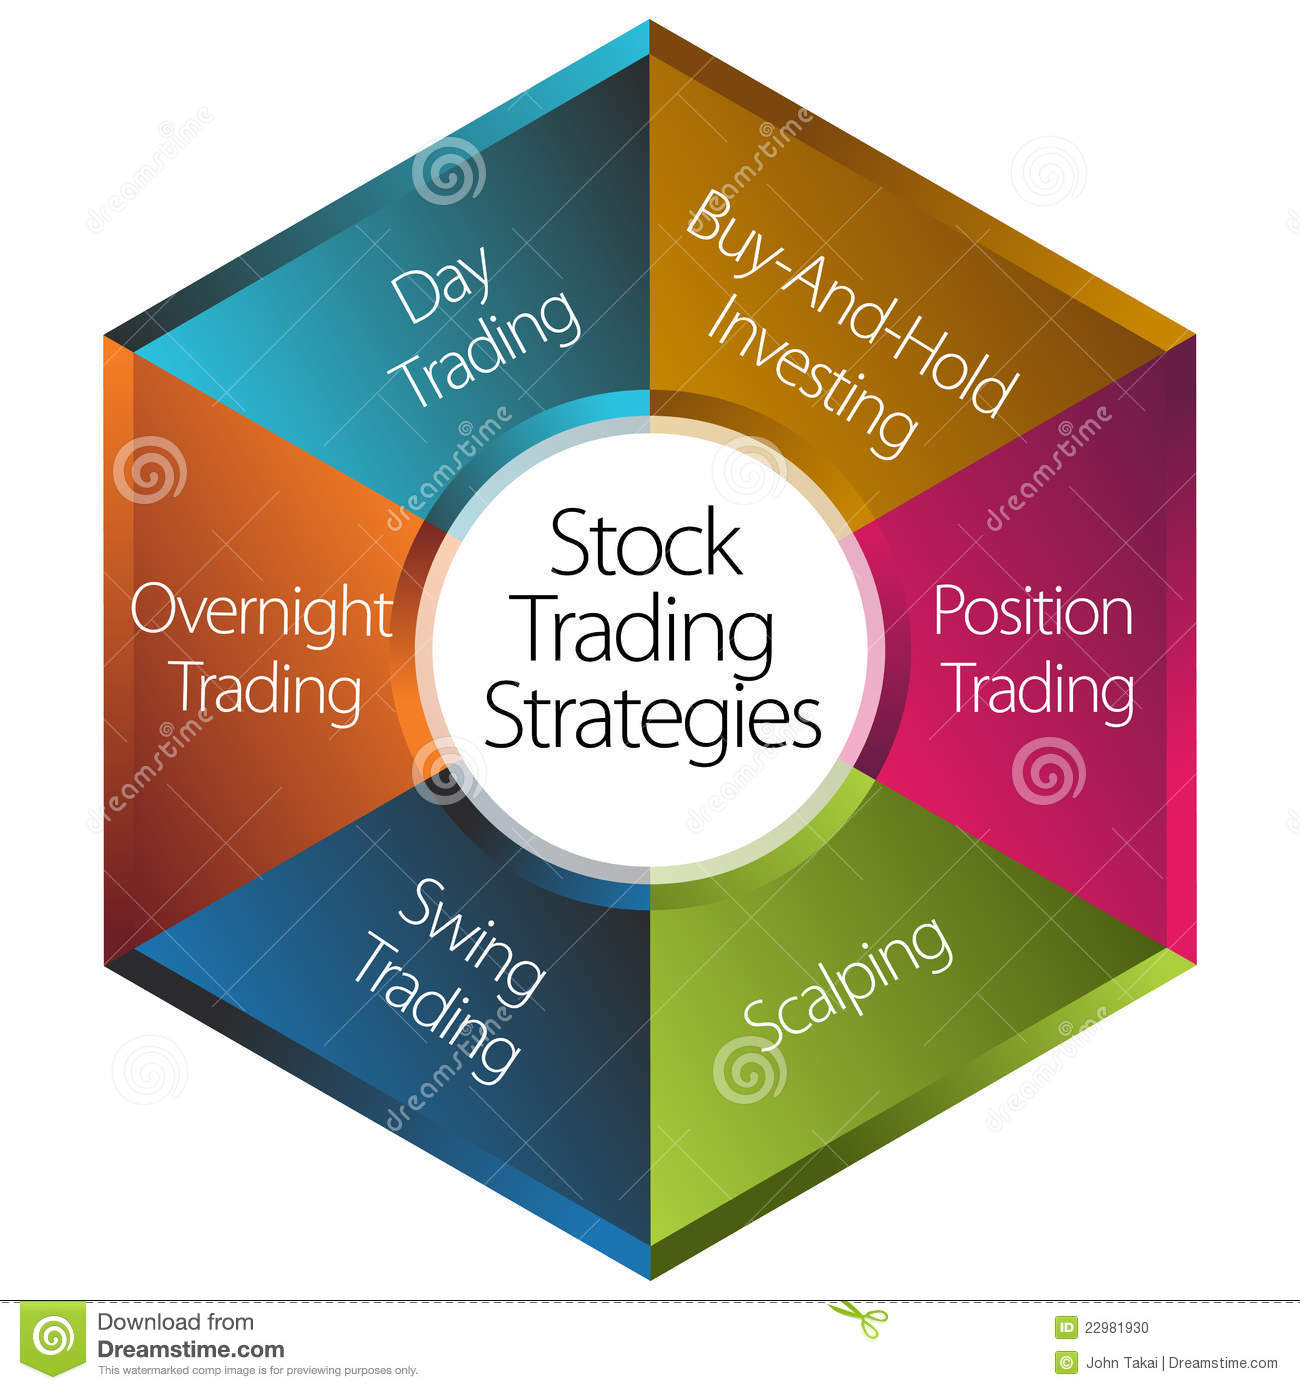 Trading strategies stocks